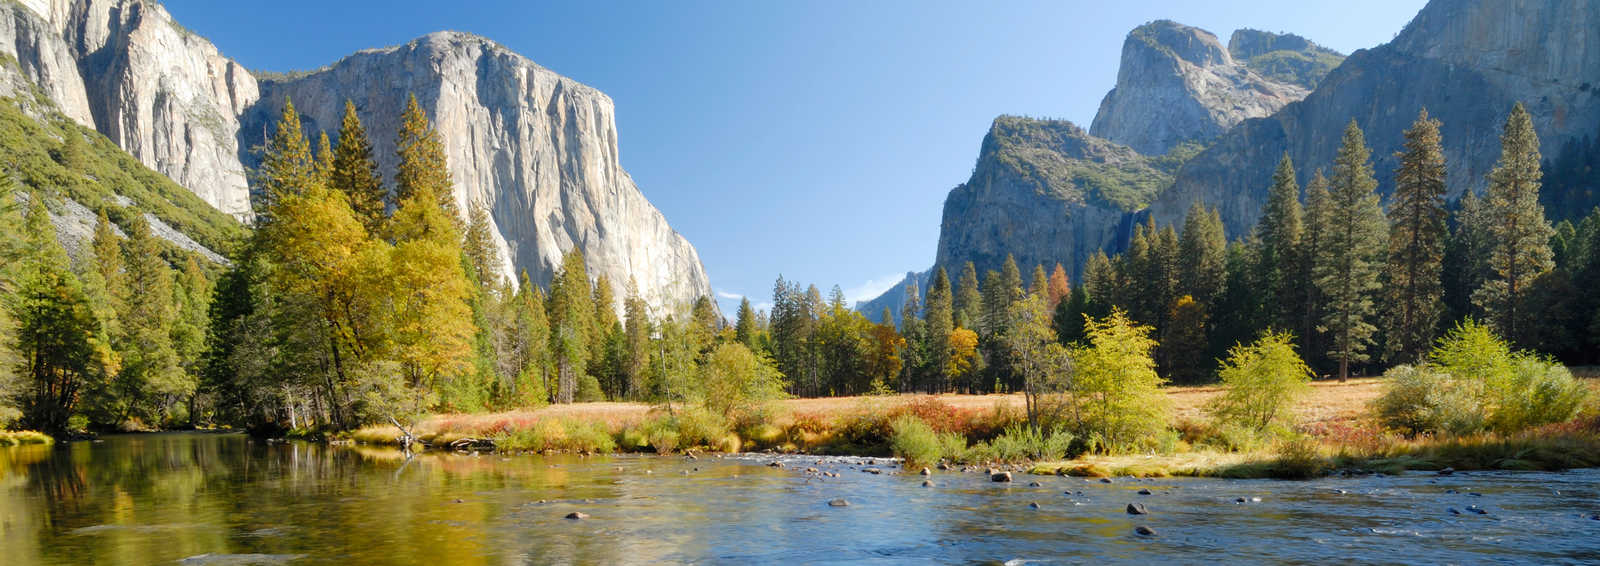 Autumn in Yosemite Valley, USA